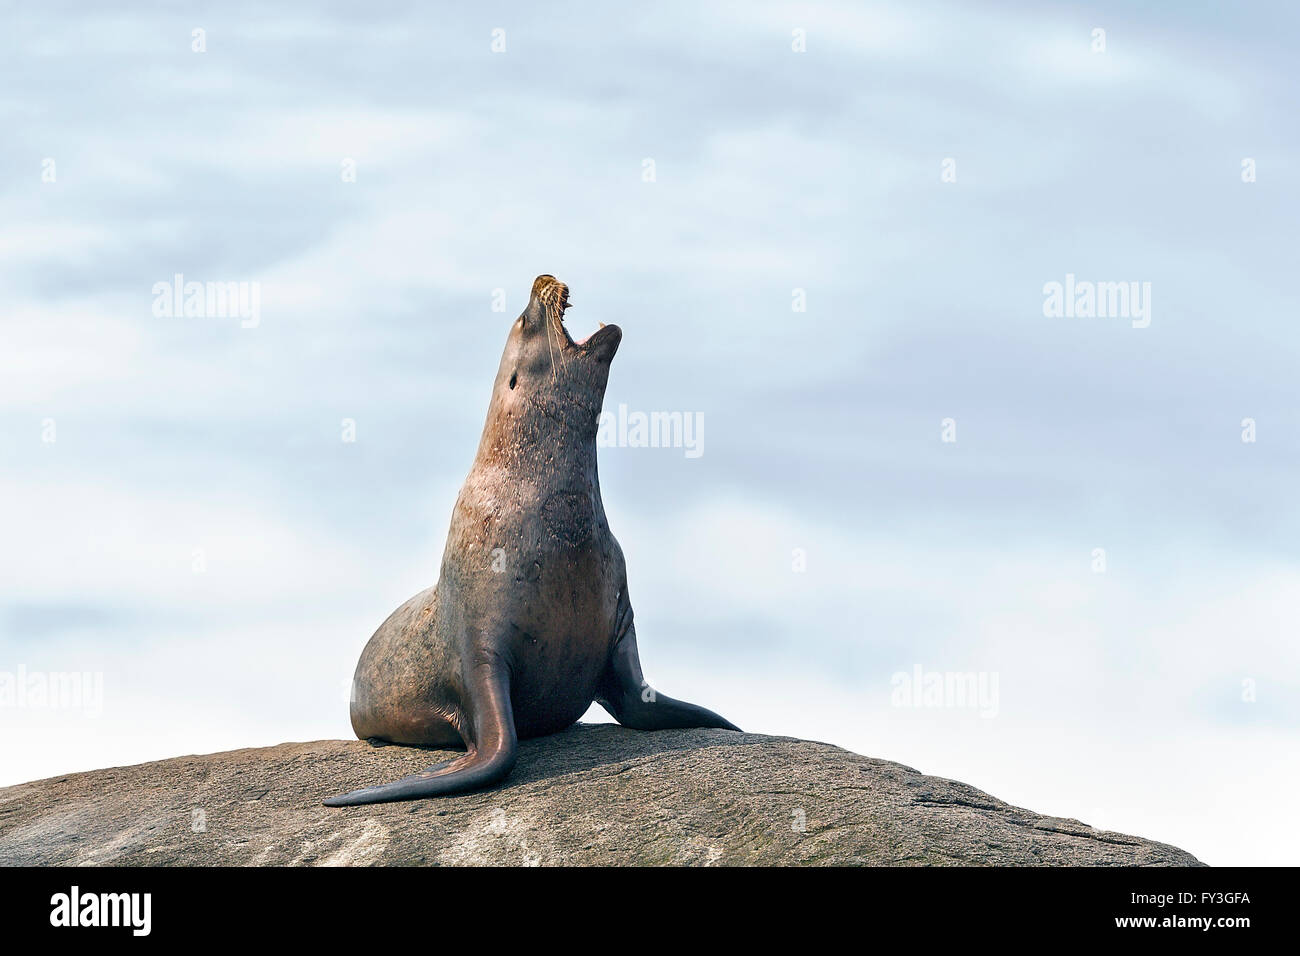 Steller Sea Lion (Eumetopias jubatus) calling from a prominent rock in a coastal rookery in Alaska - Stock Image